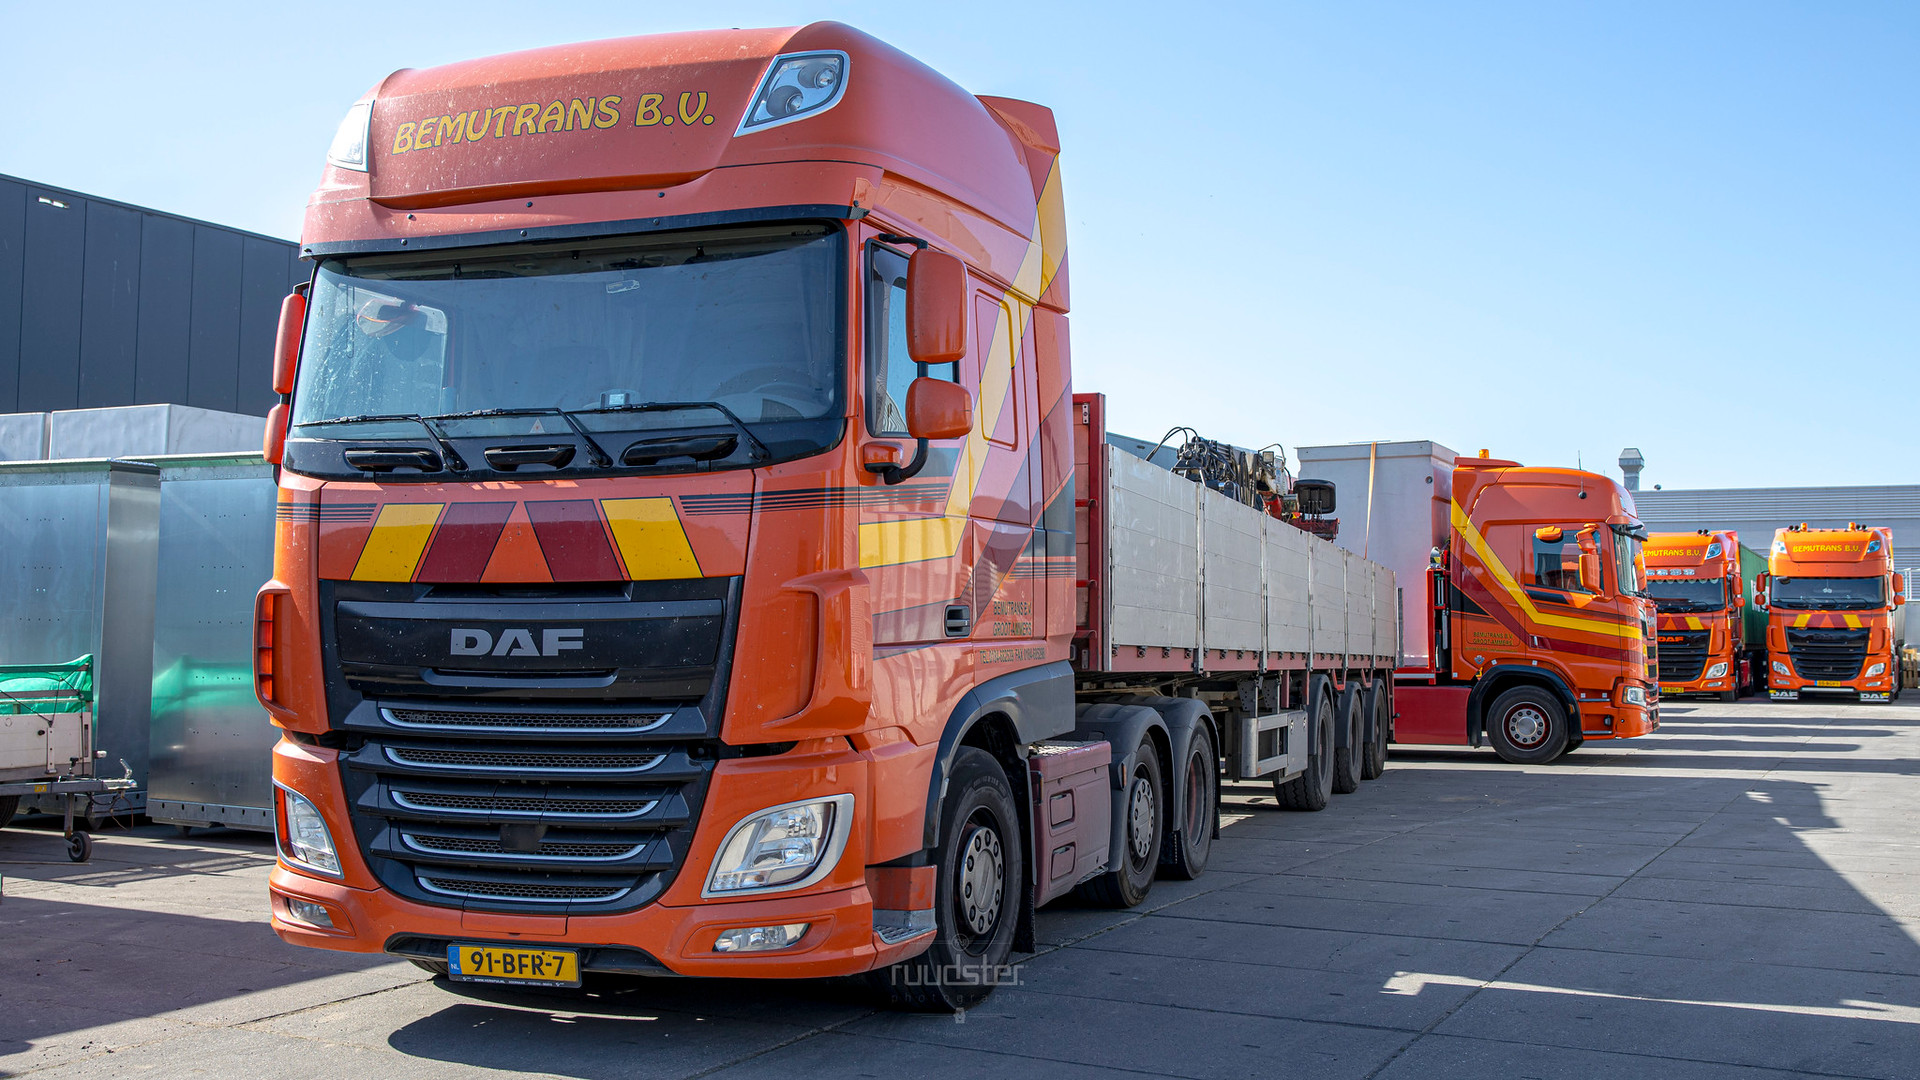 91-BFR-7 | Build: 2015 - DAF XF106.460